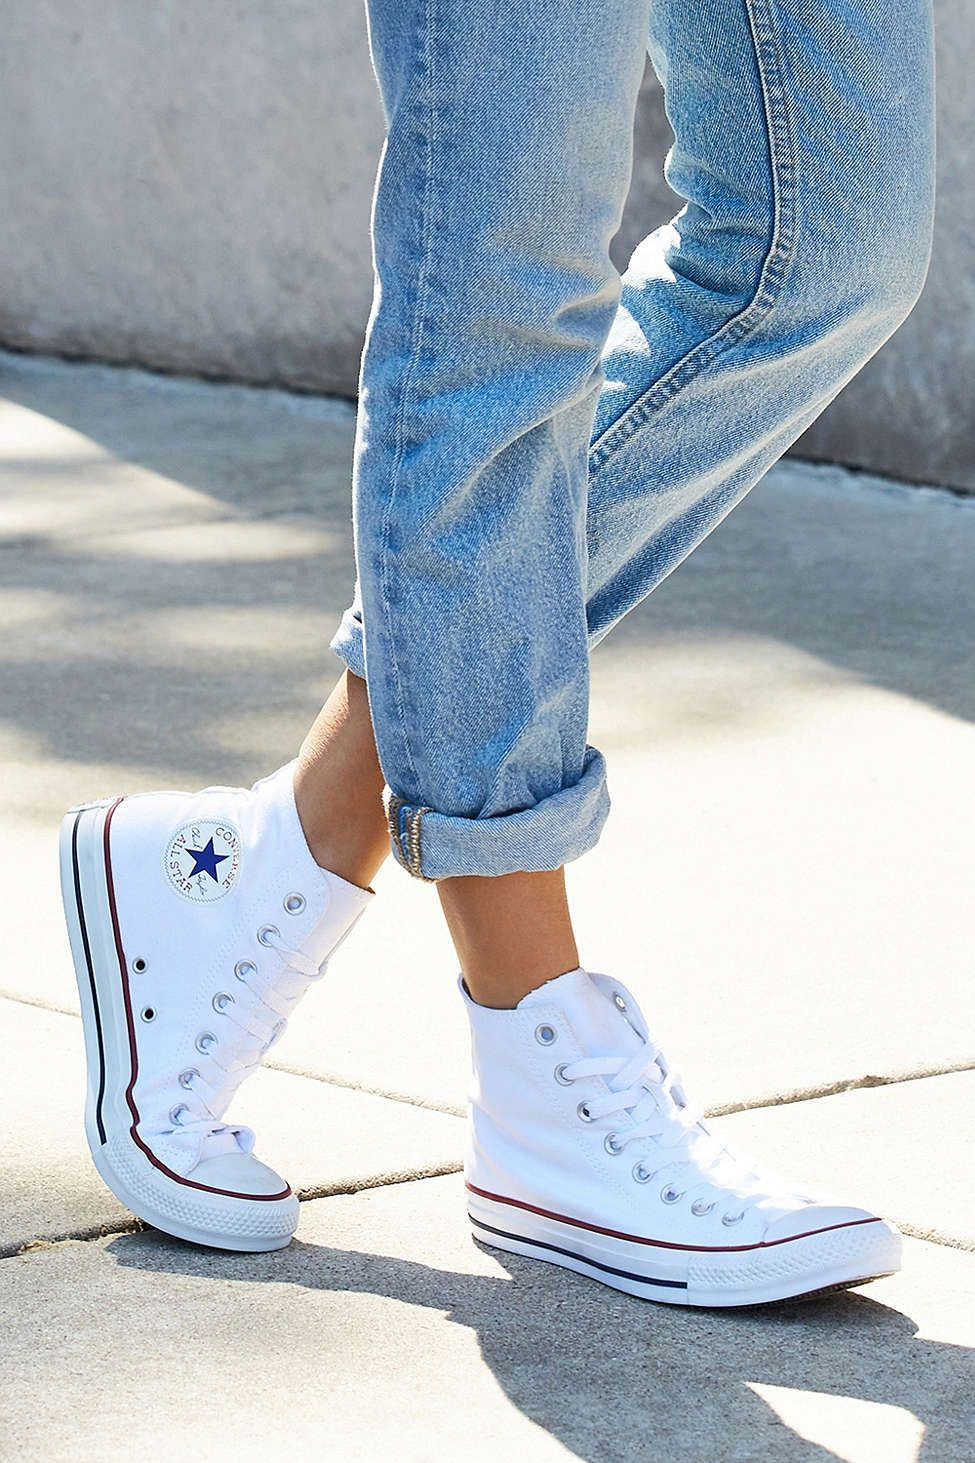 26283917e8b6f Converse Chuck Taylor All Star High Top Sneaker in 2019